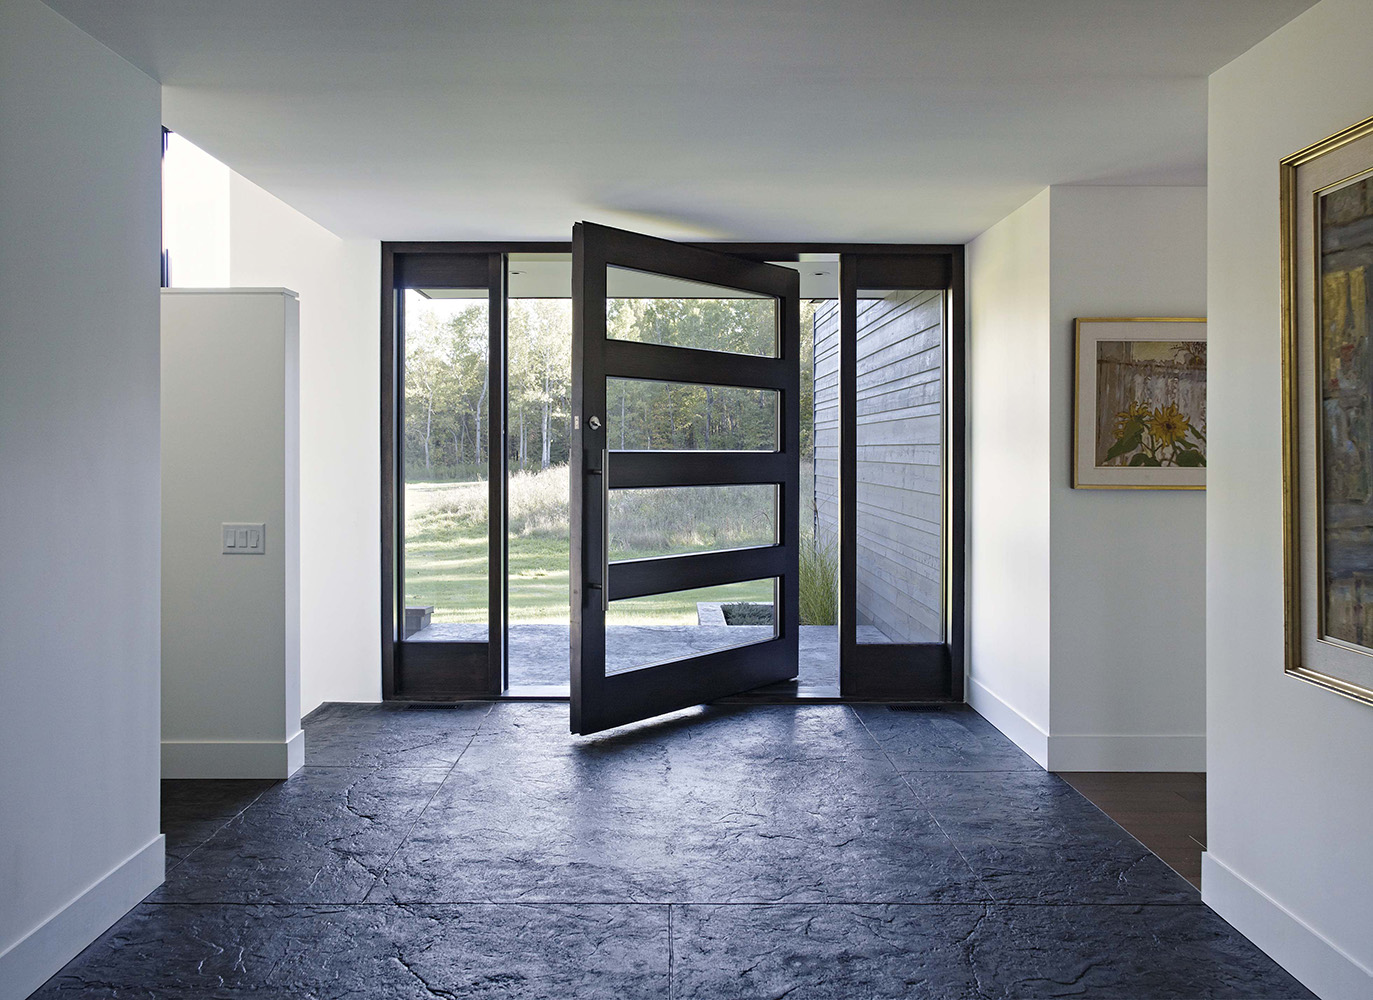 Modern home entryway with offset pivot door with double sidelights. Natural stone floor tile on exterior and interior